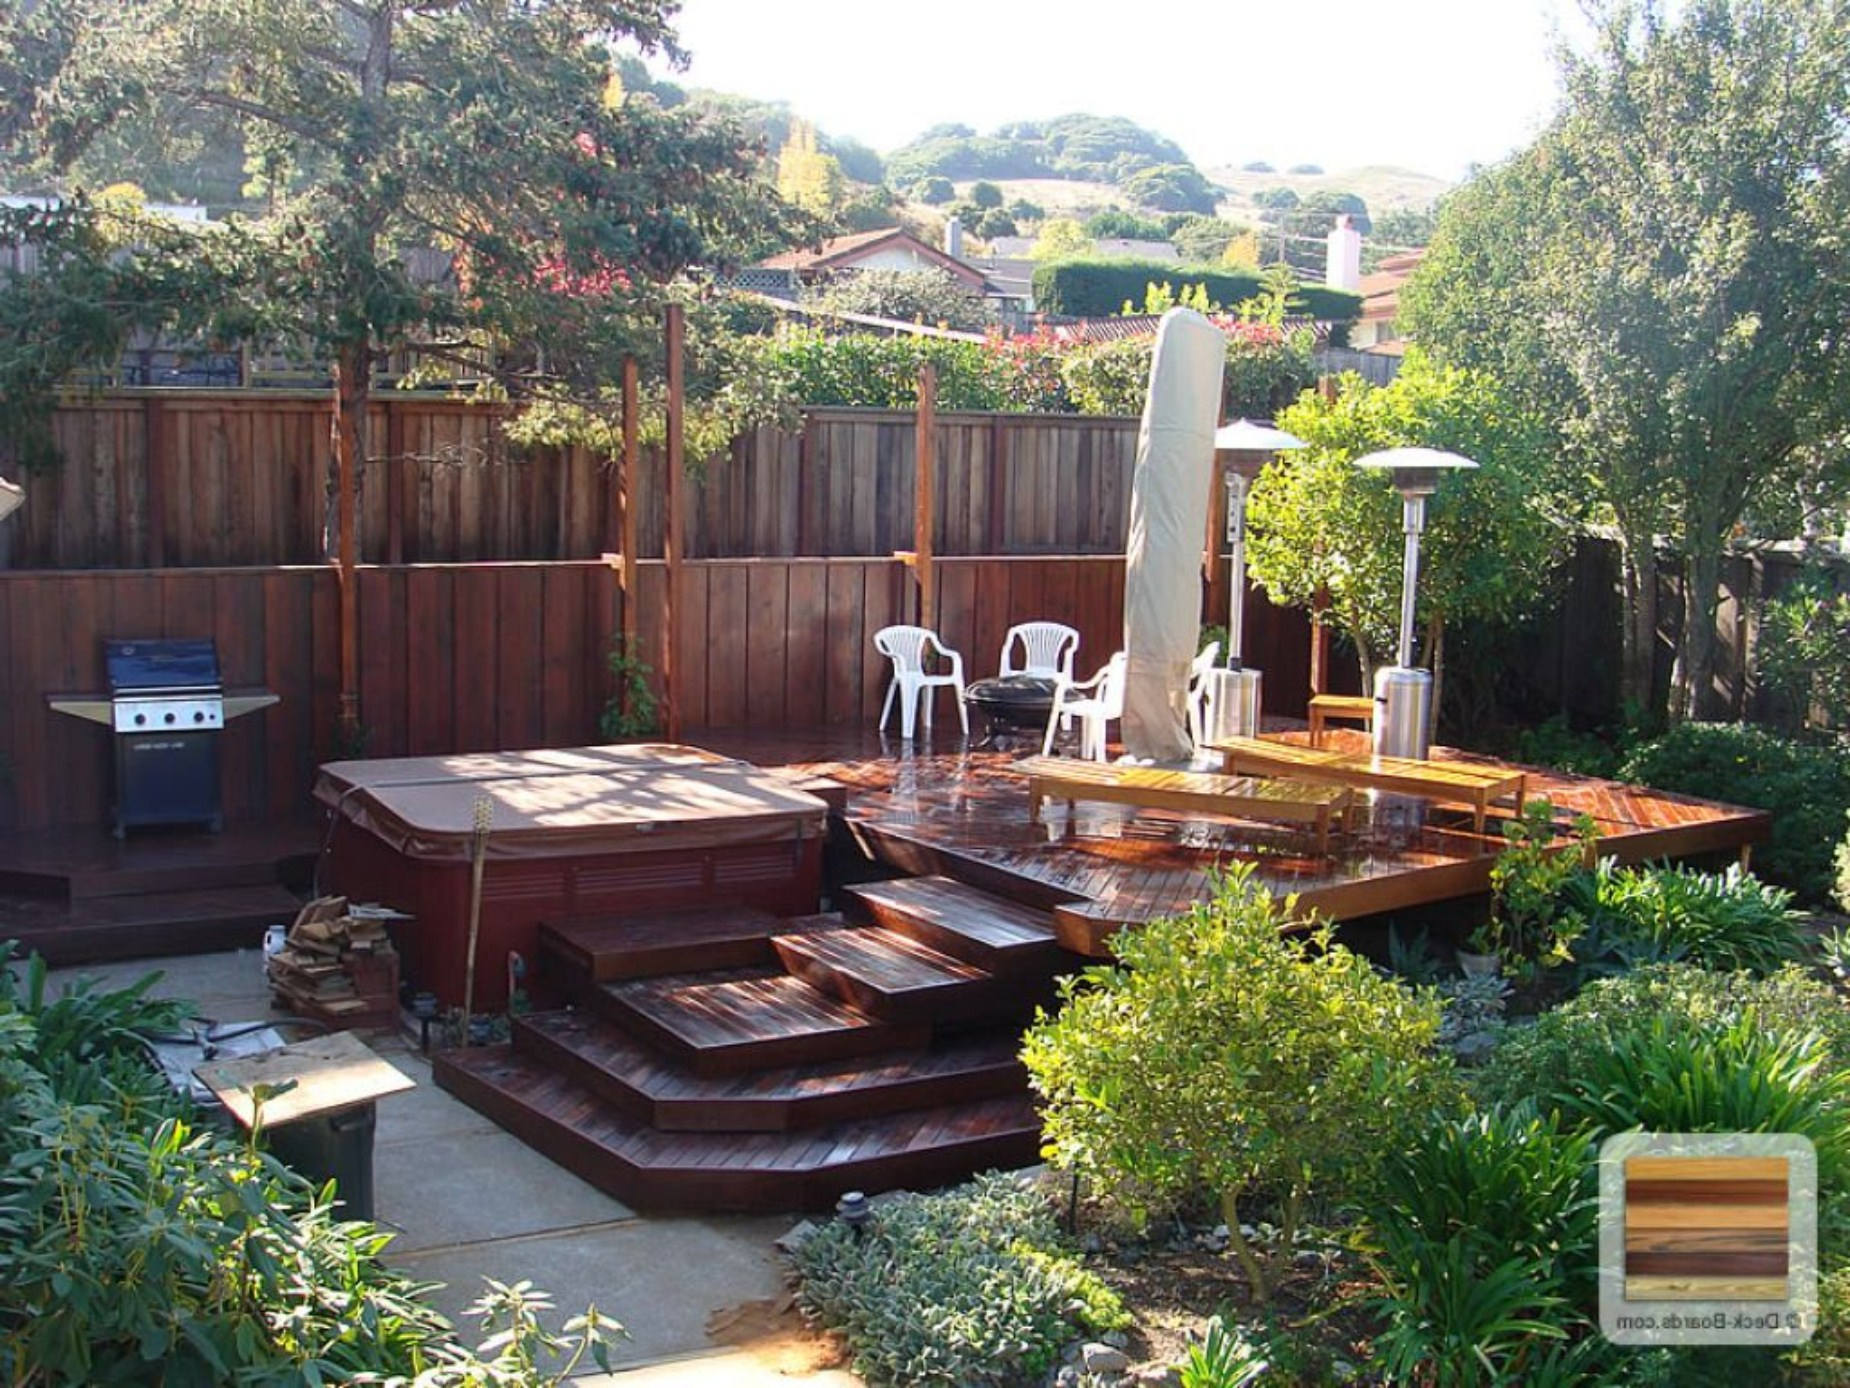 Backyard Deck Ideas Pictures Back Design Small Modern Composite within 14 Some of the Coolest Tricks of How to Makeover Backyard Small Deck Ideas